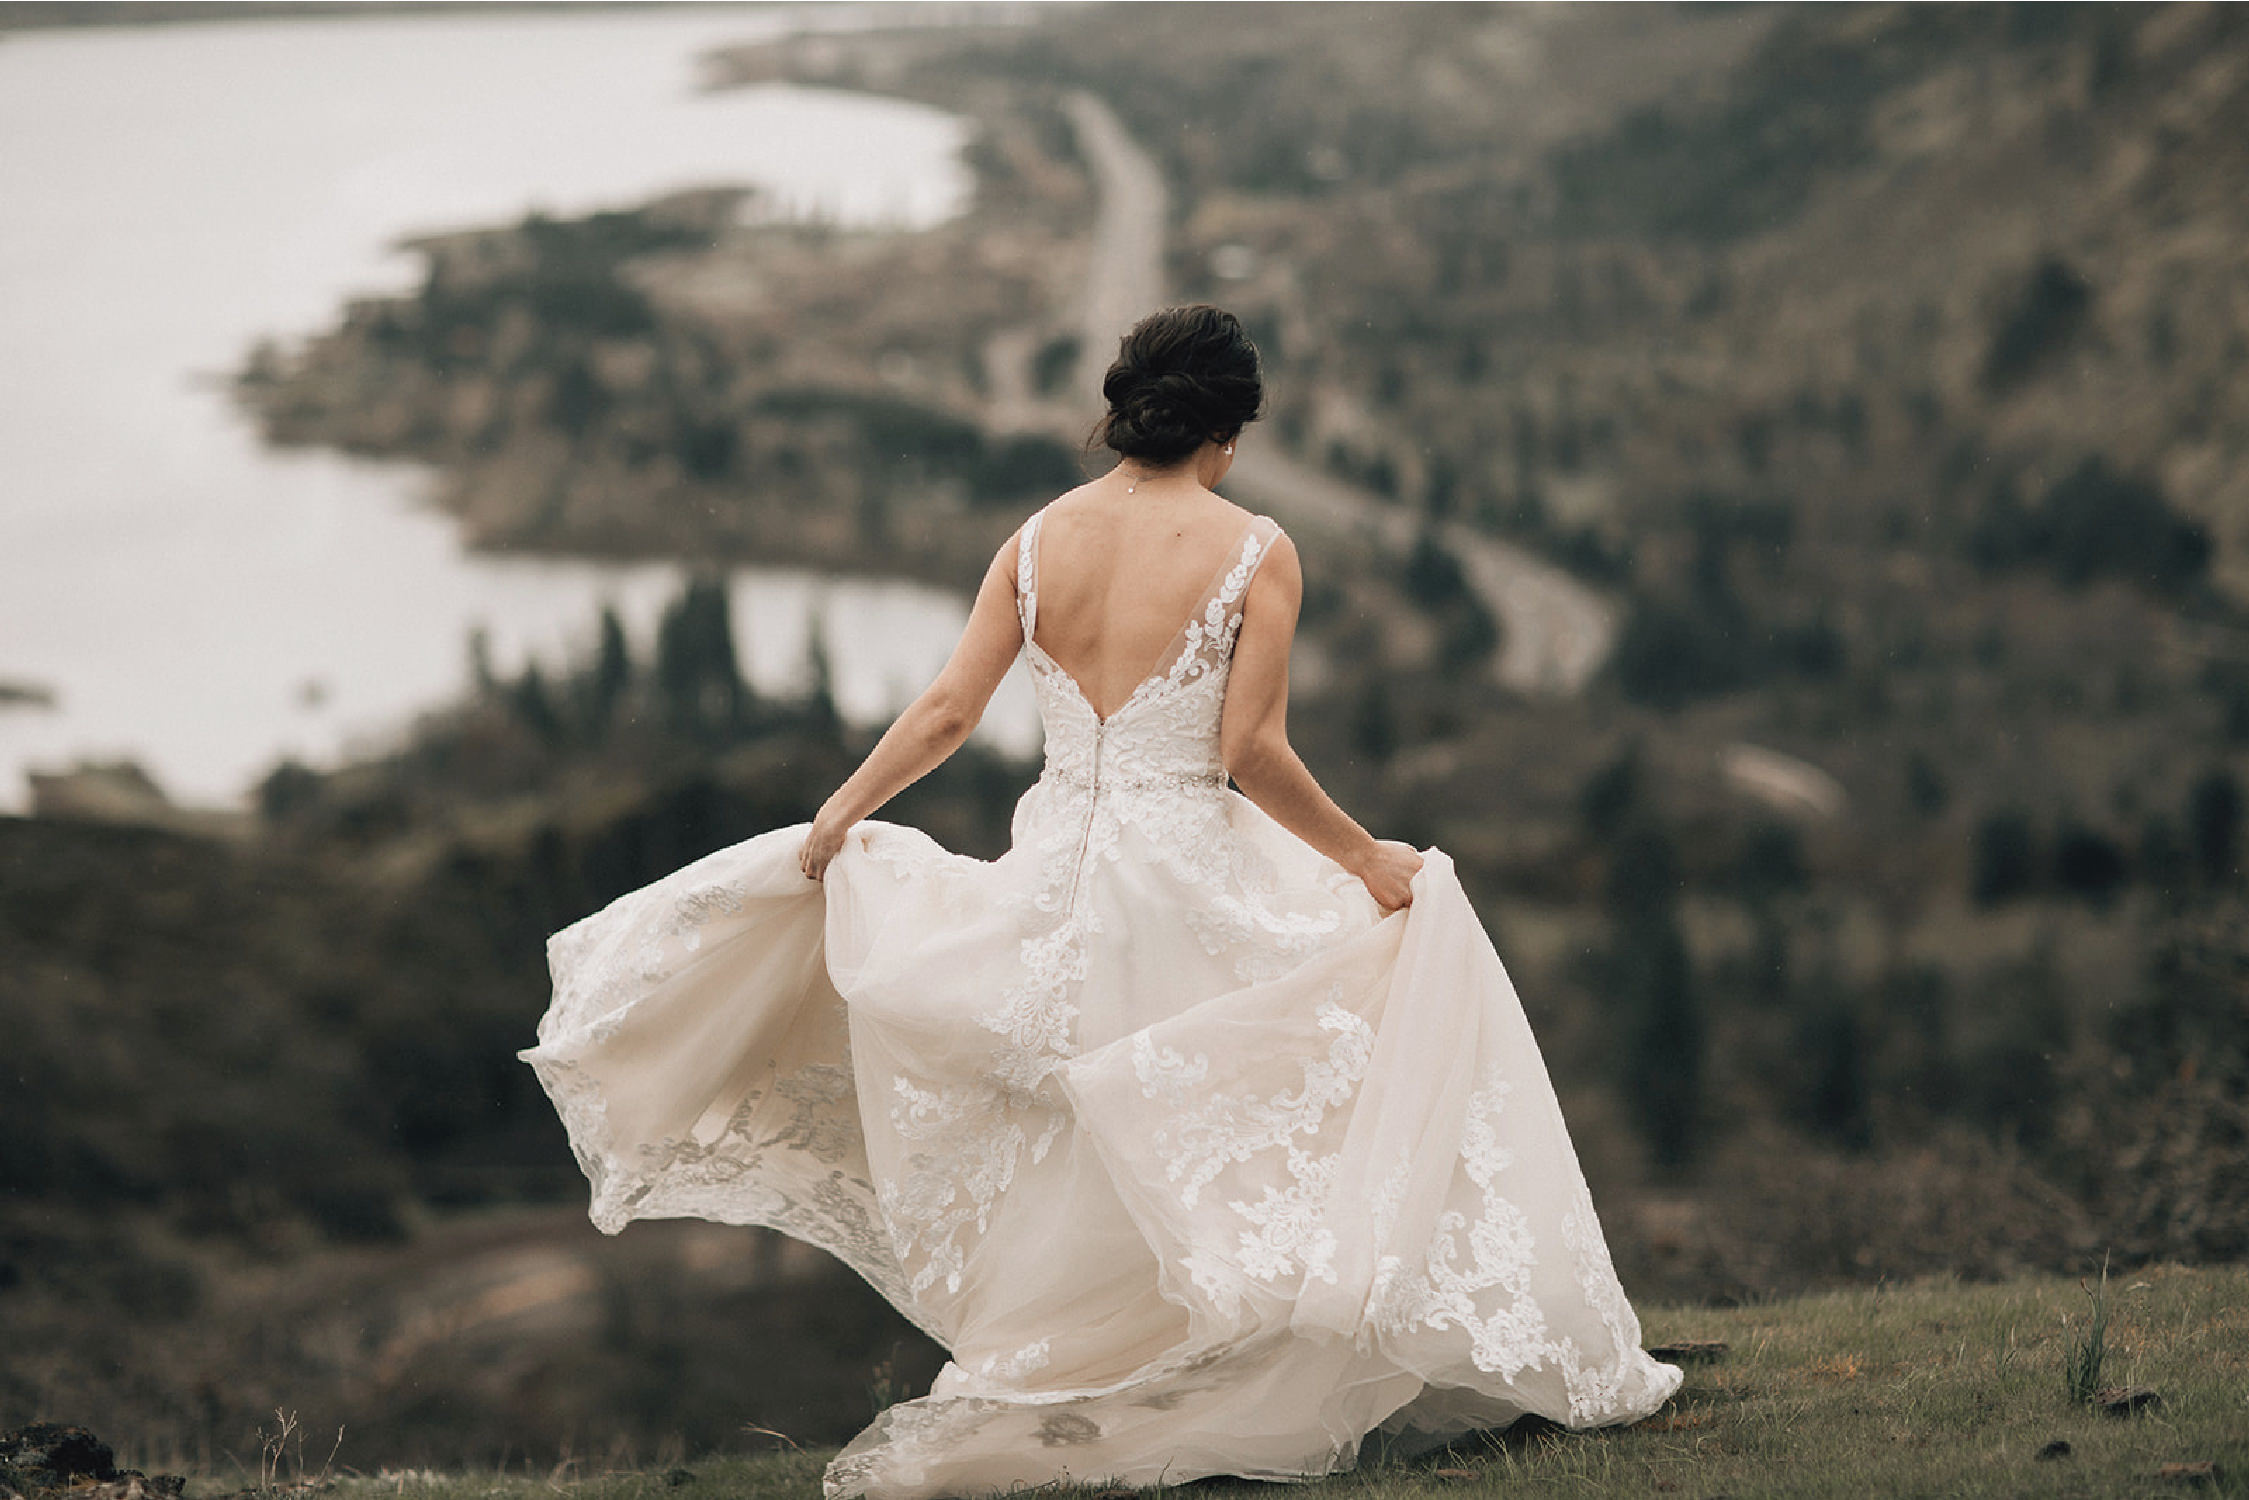 back of bride's hairstyle and dress as she walks away with mountains and river in background